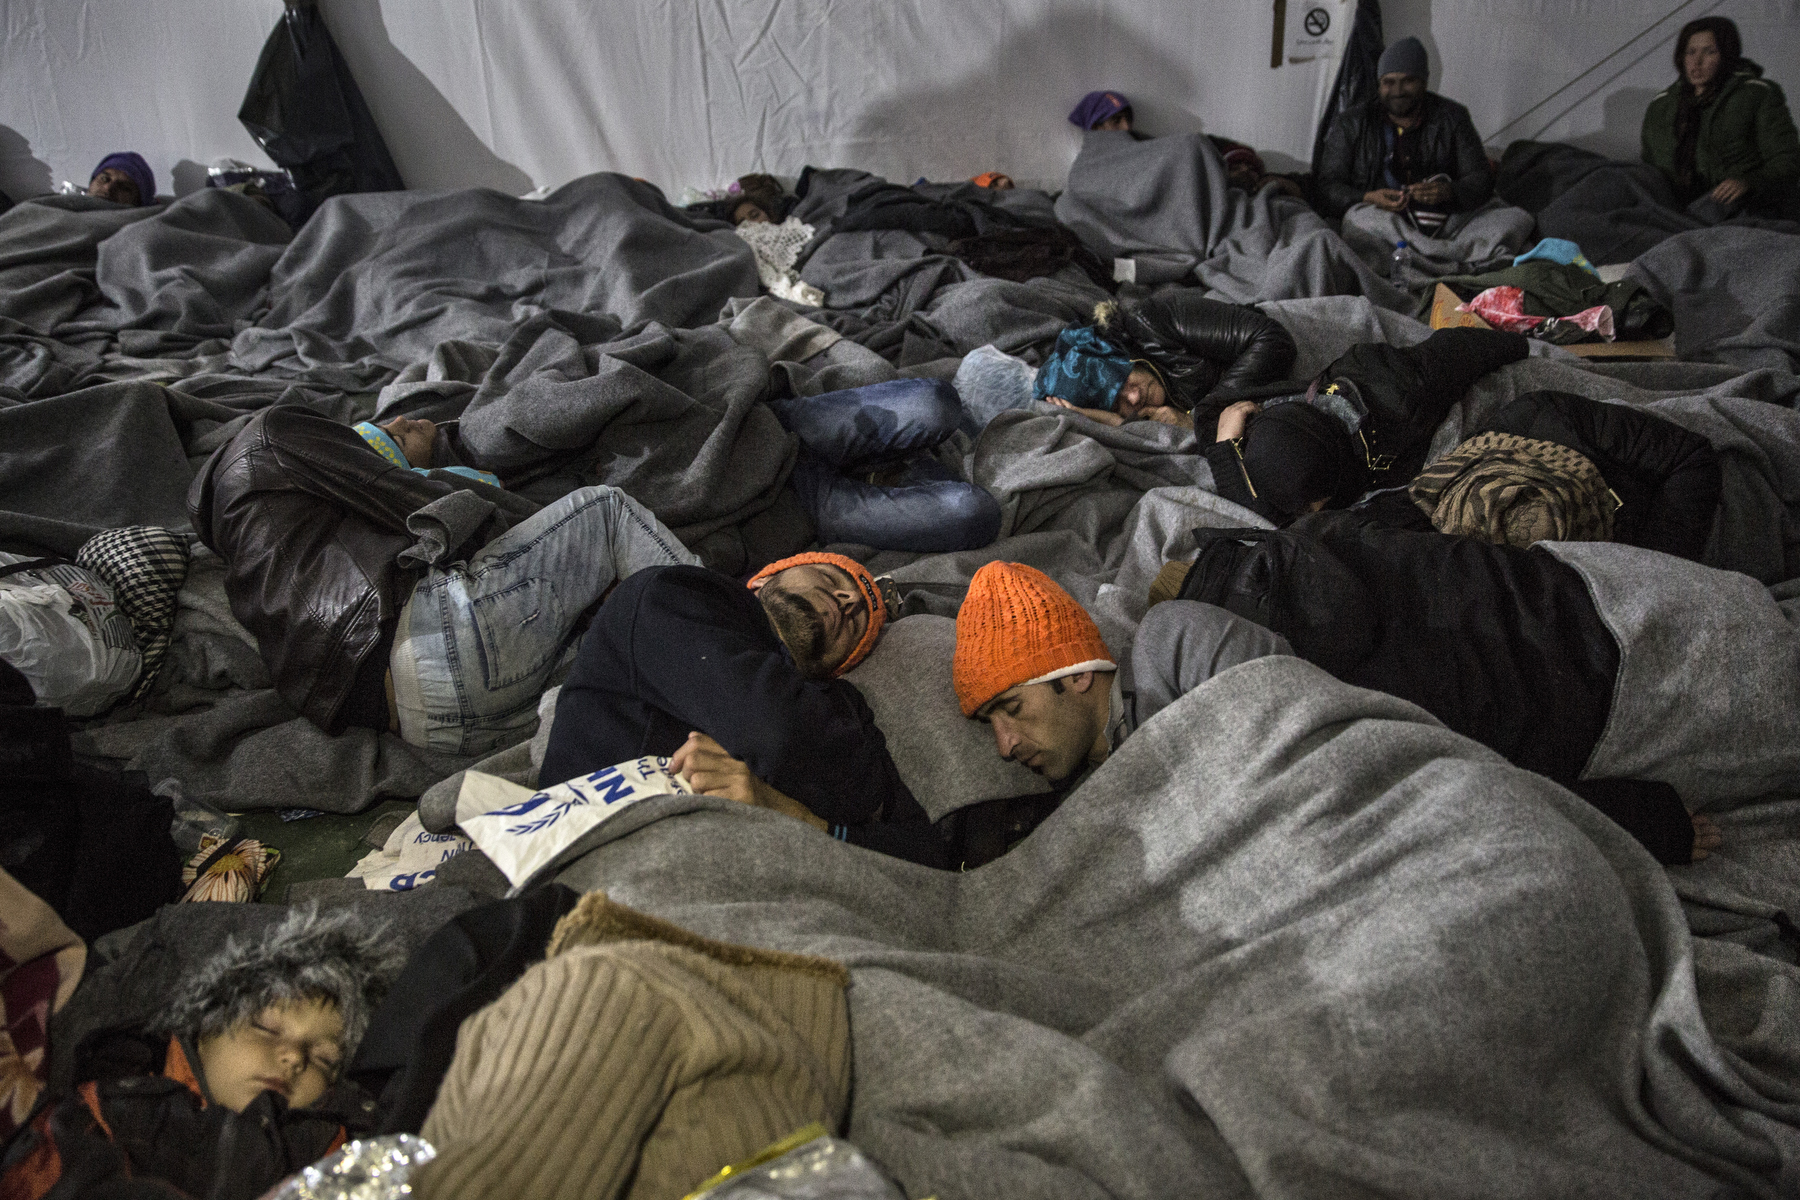 LESBOS, GREECE - OCTOBER 26: Refugees piled on top of each other sleep inside a large tent a transitional camp Lesbos, on October 30, 2015. to the IOM, an estimated 100,000 people landed in Greece, an average of almost 4,500 per day in late October and November. Nearly all of those entering Greece on a boat from Turkey are from the war zones of Syria, Iraq and Afghanistan. (Photo by Paula Bronstein)